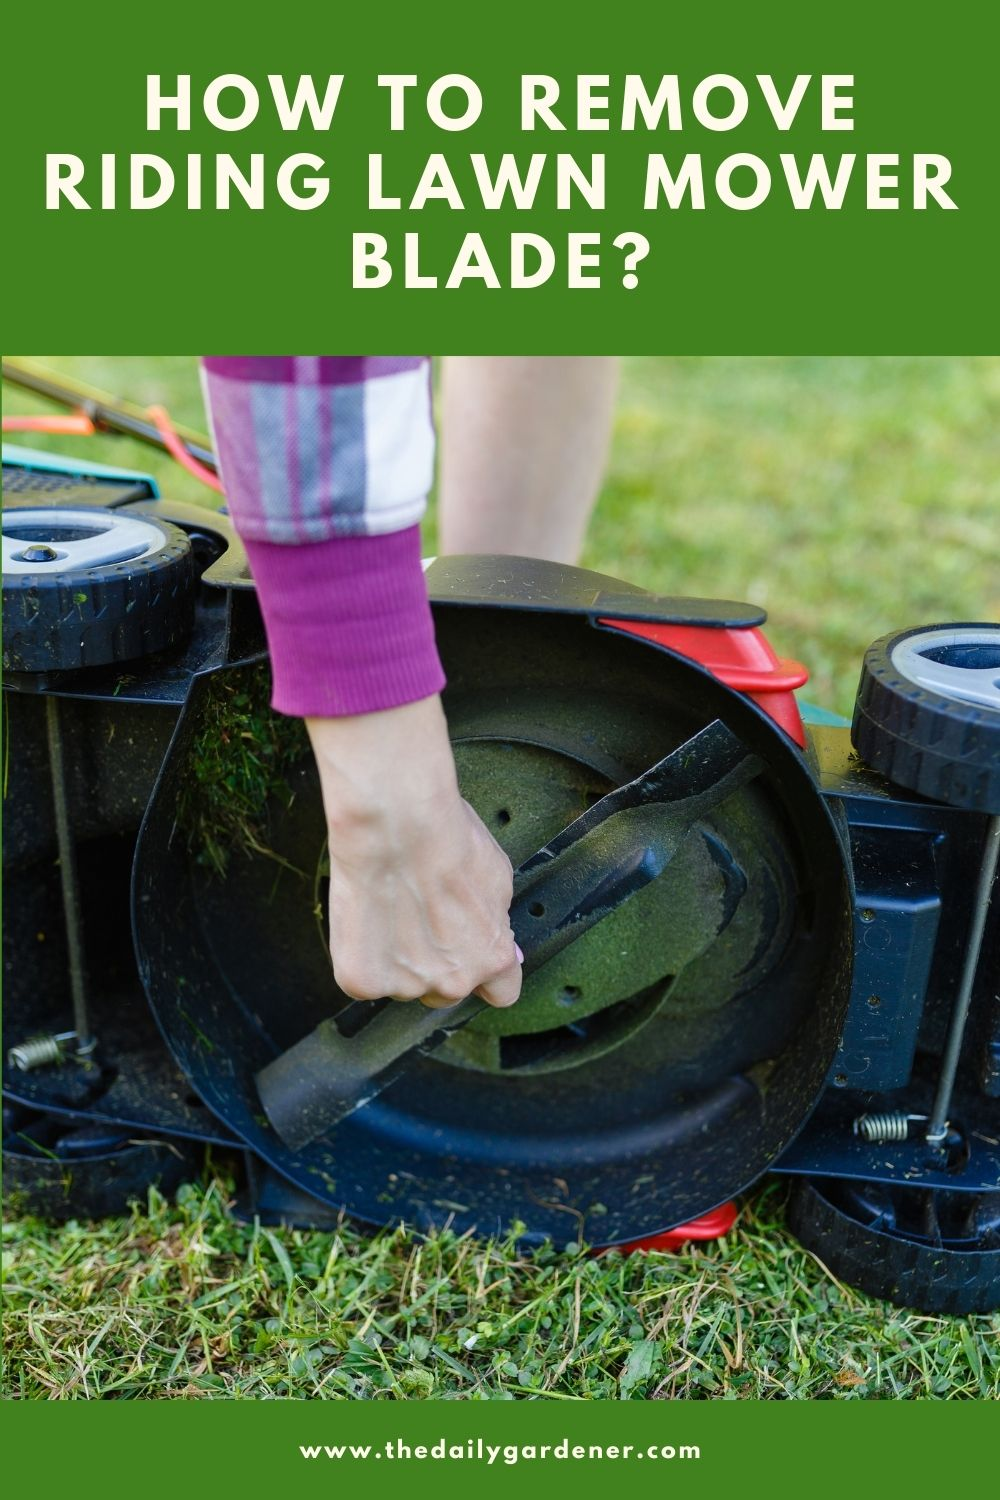 How to Remove Riding Lawn mower Blade 2